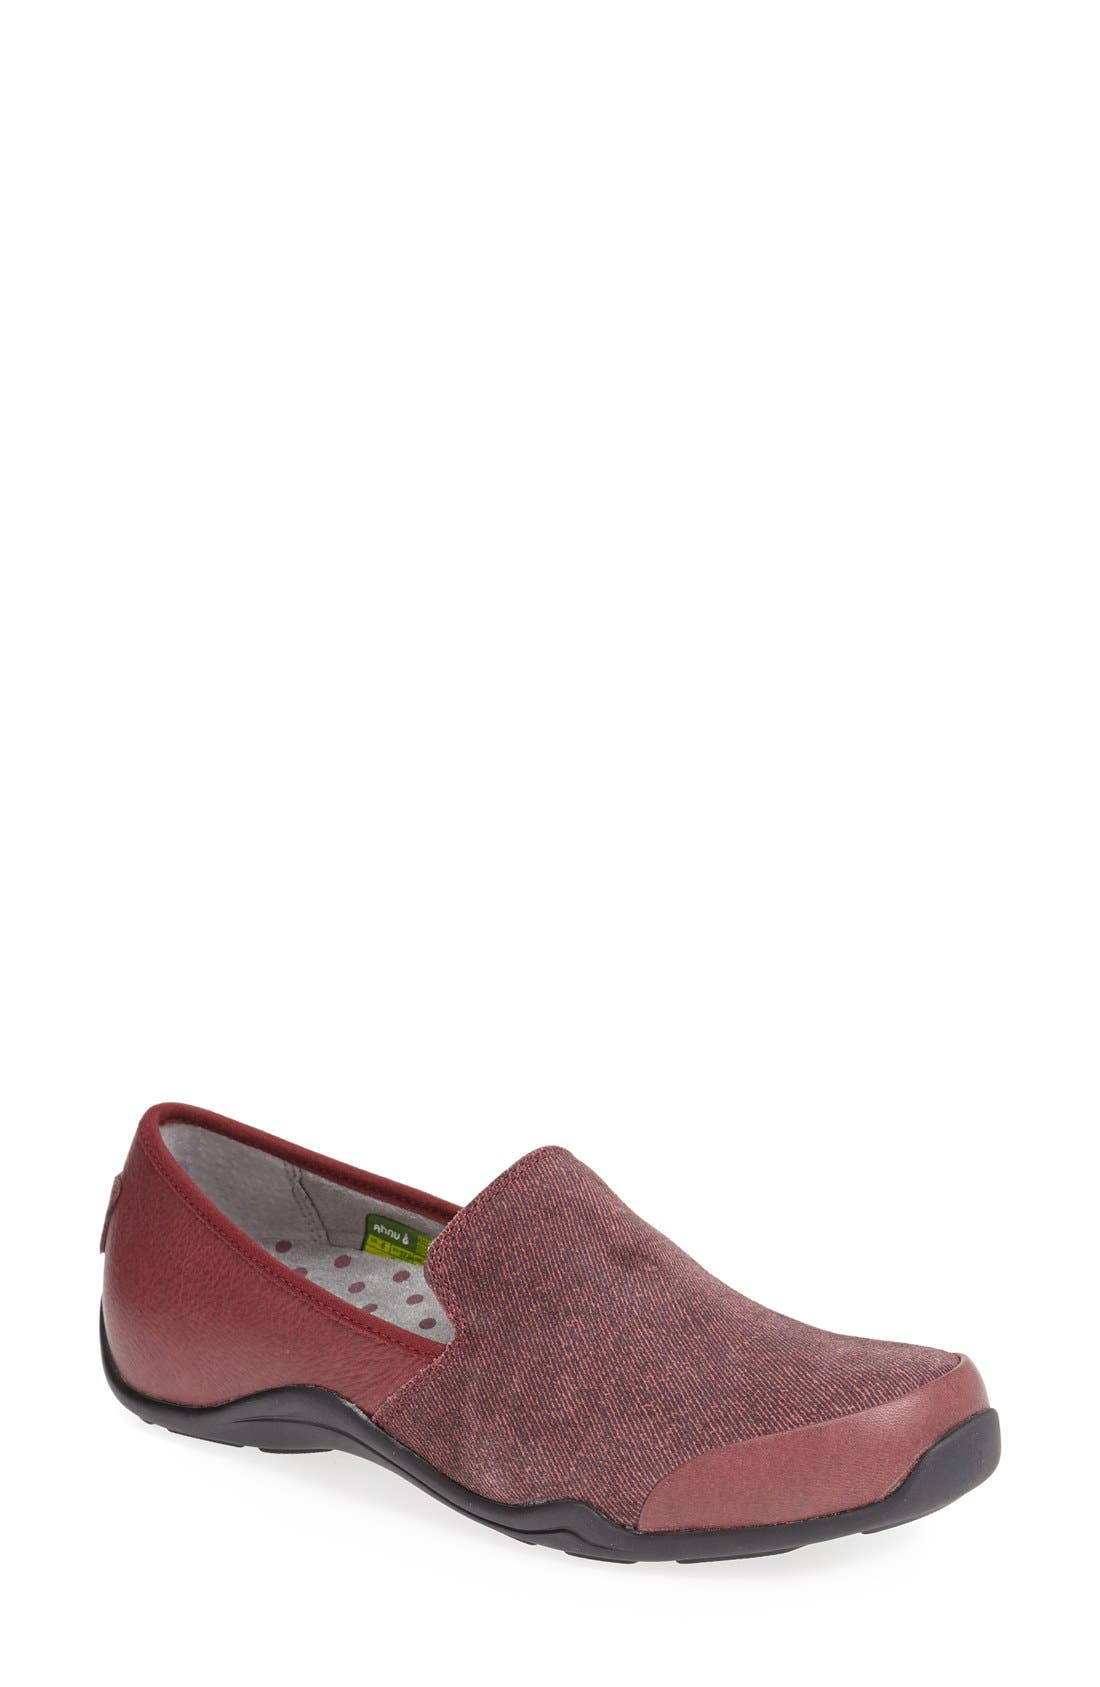 Main Image - Ahnu 'Penny' Leather Loafer (Women)